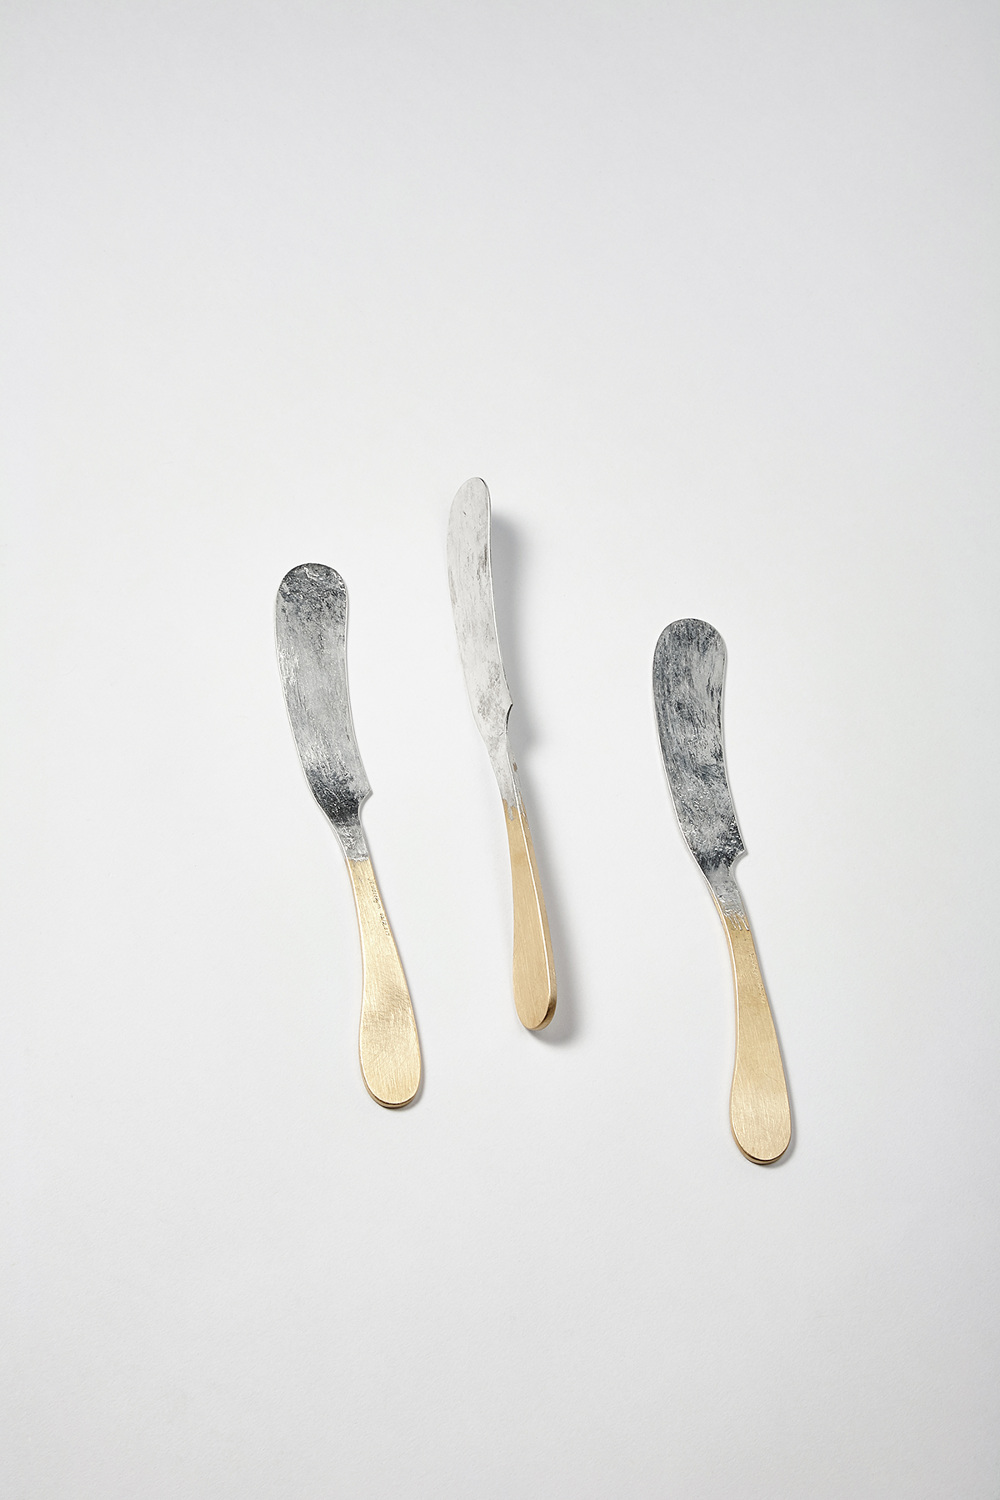 Brass Butter Knife designed by studiokyss